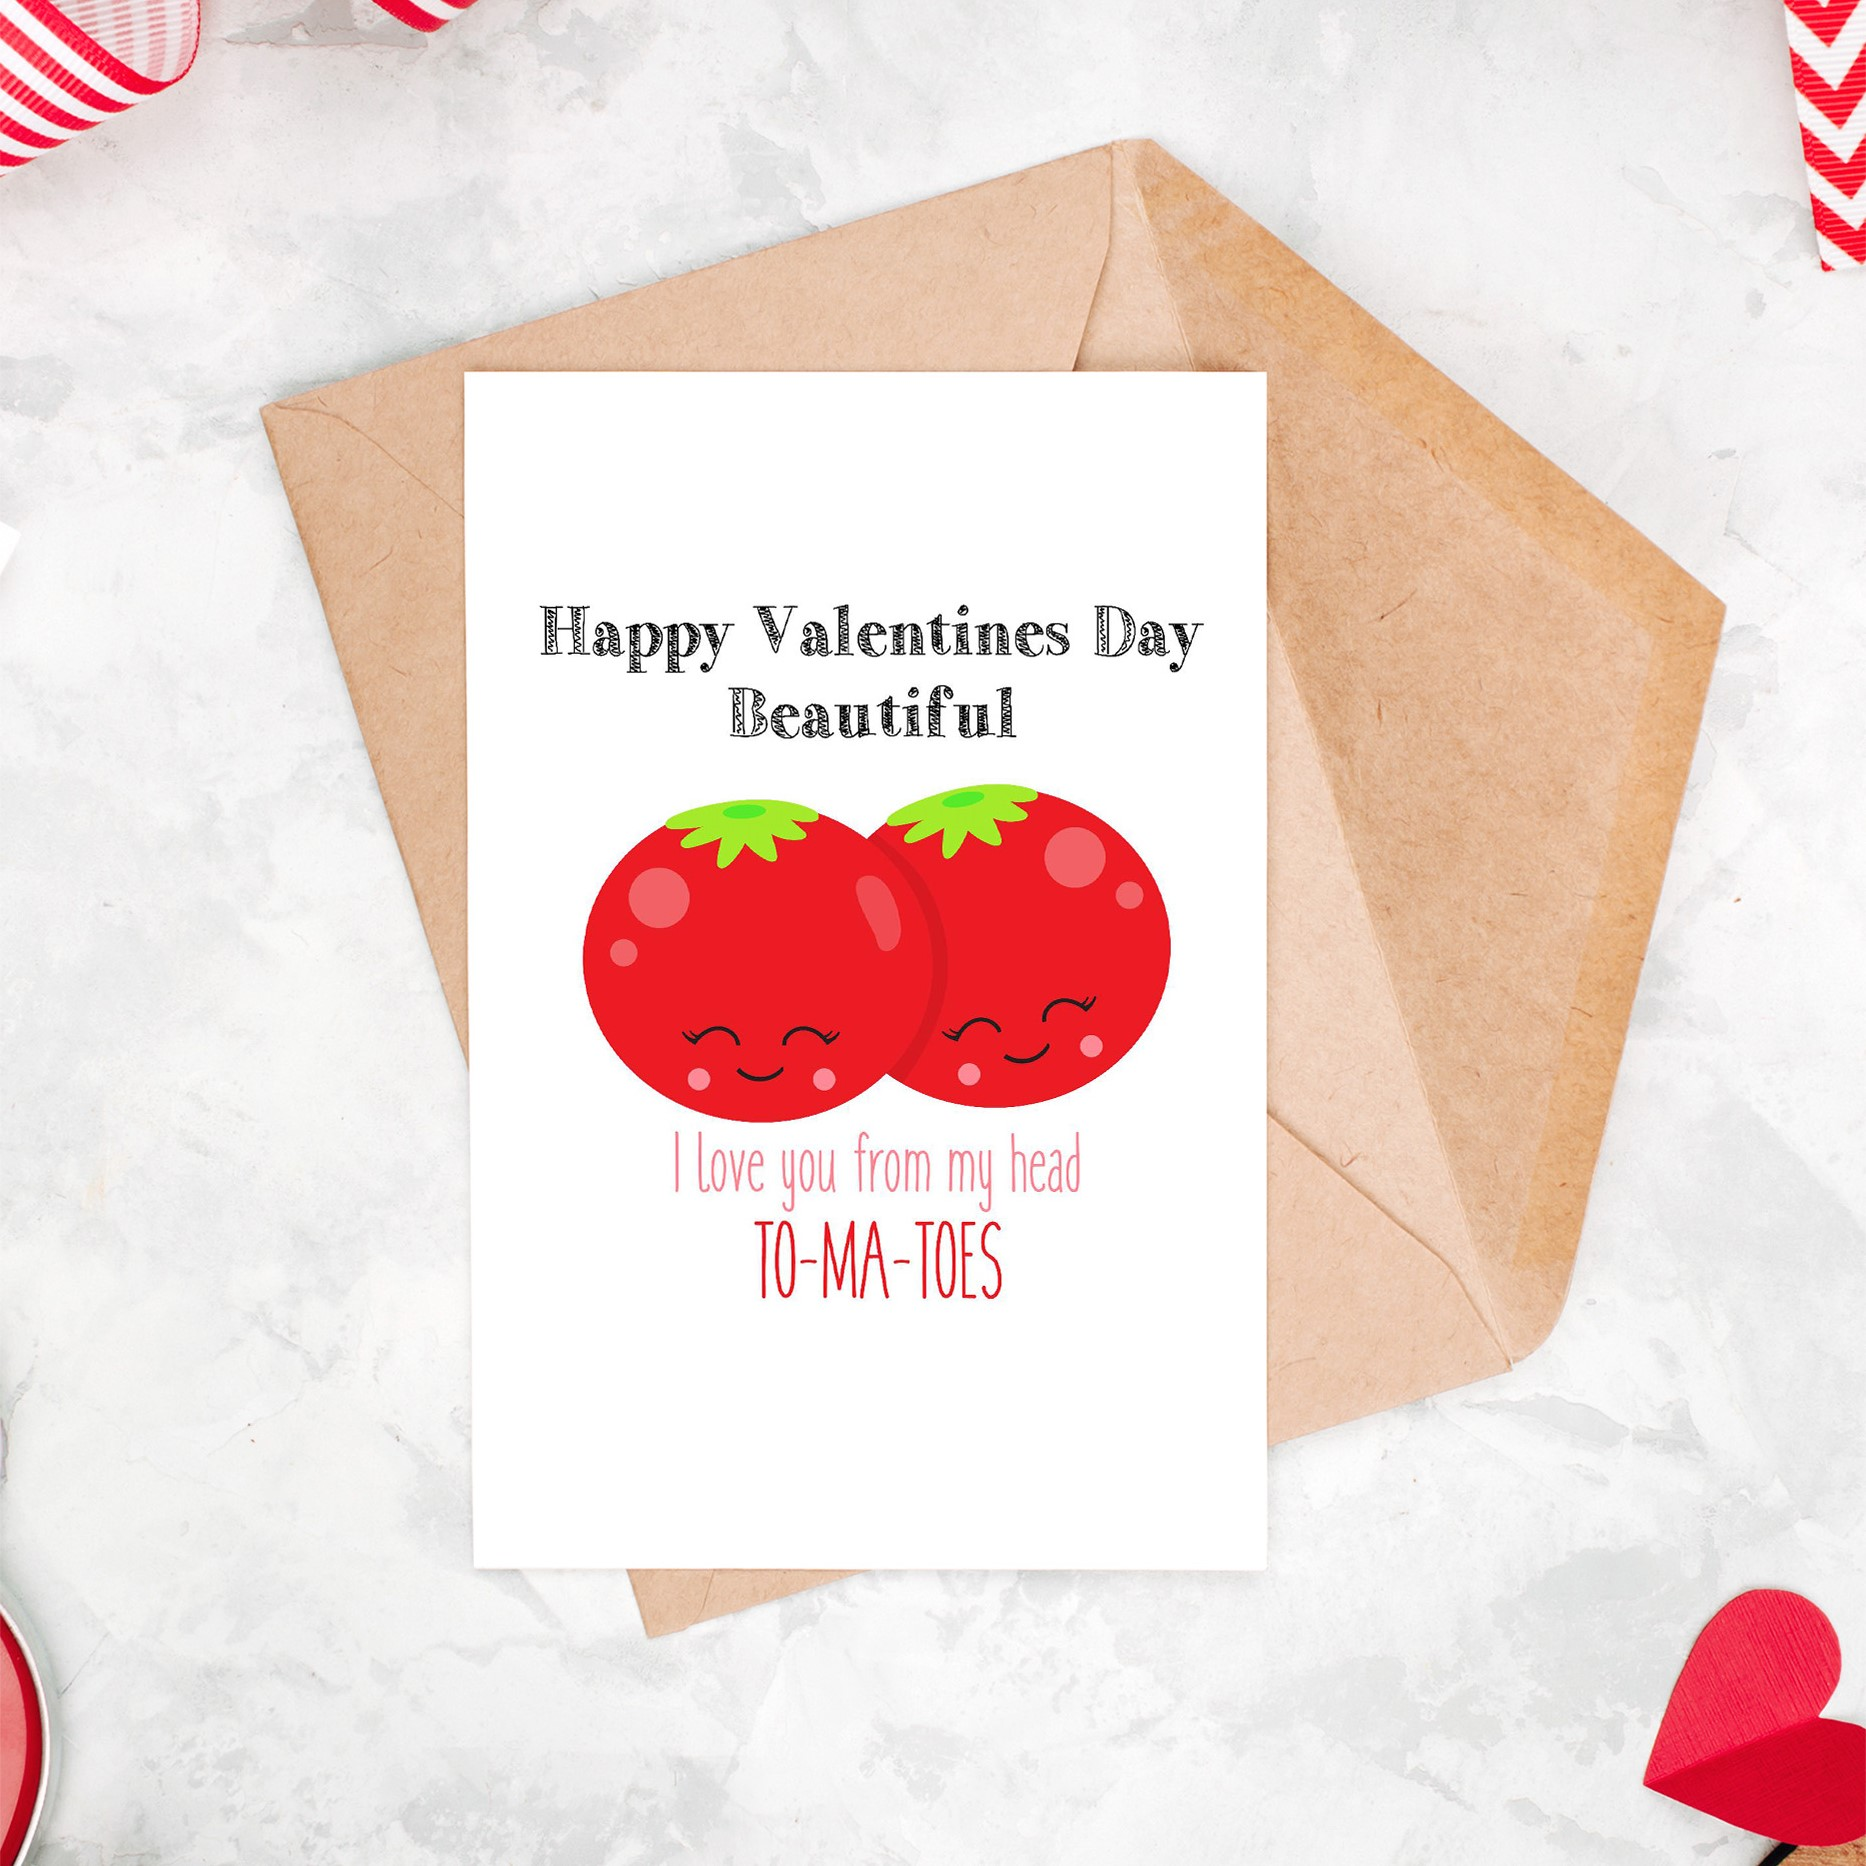 Head To-Ma-Toes Valentine's Day Card